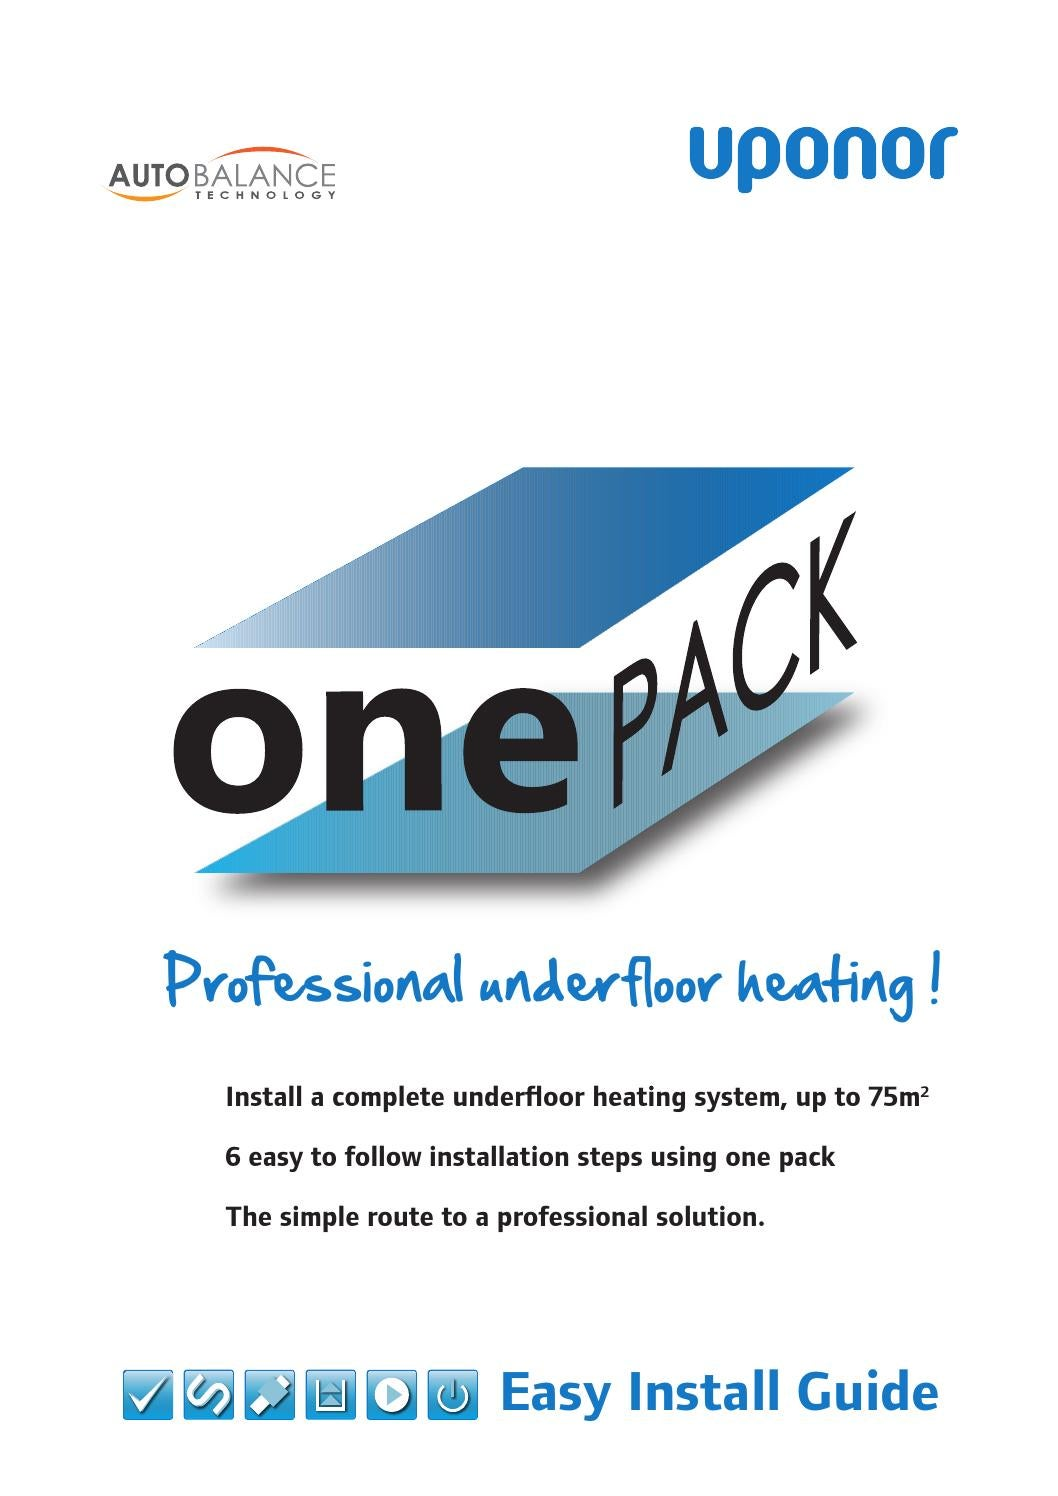 Uponor one pack easy install guide by Uponor UK - issuu